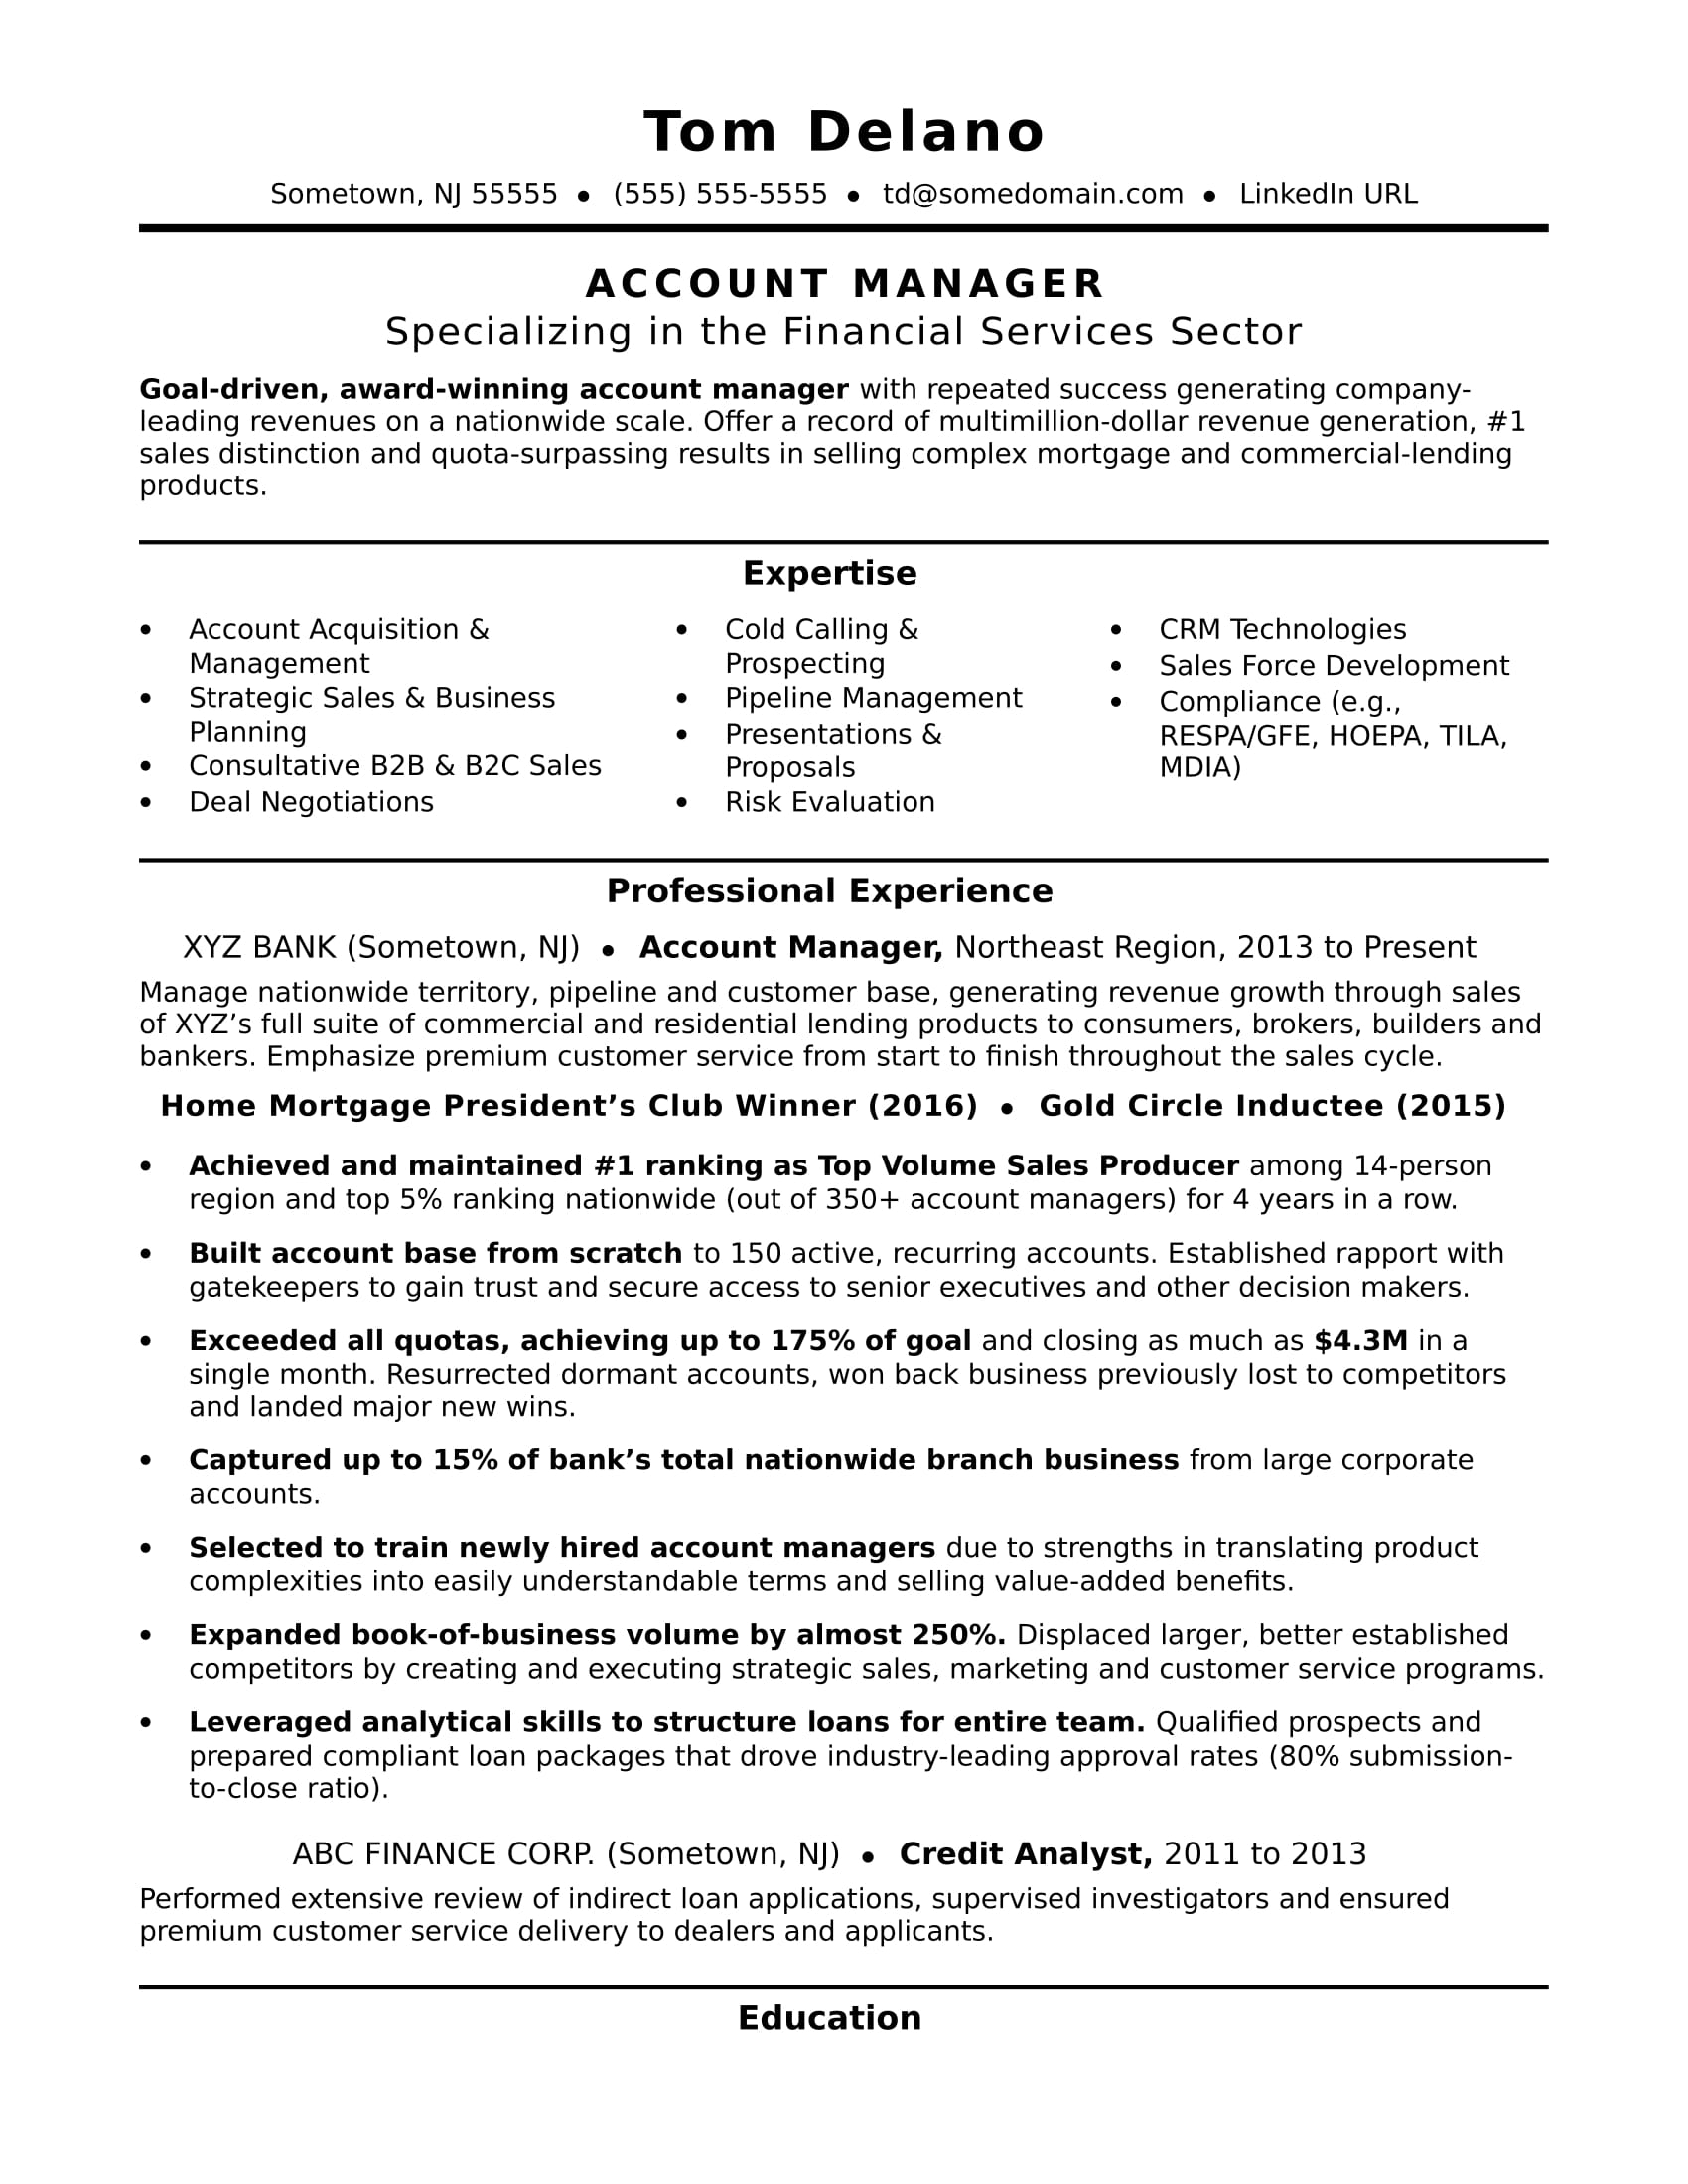 account manager resume sample monster revenue examples google photos upload project Resume Revenue Manager Resume Examples